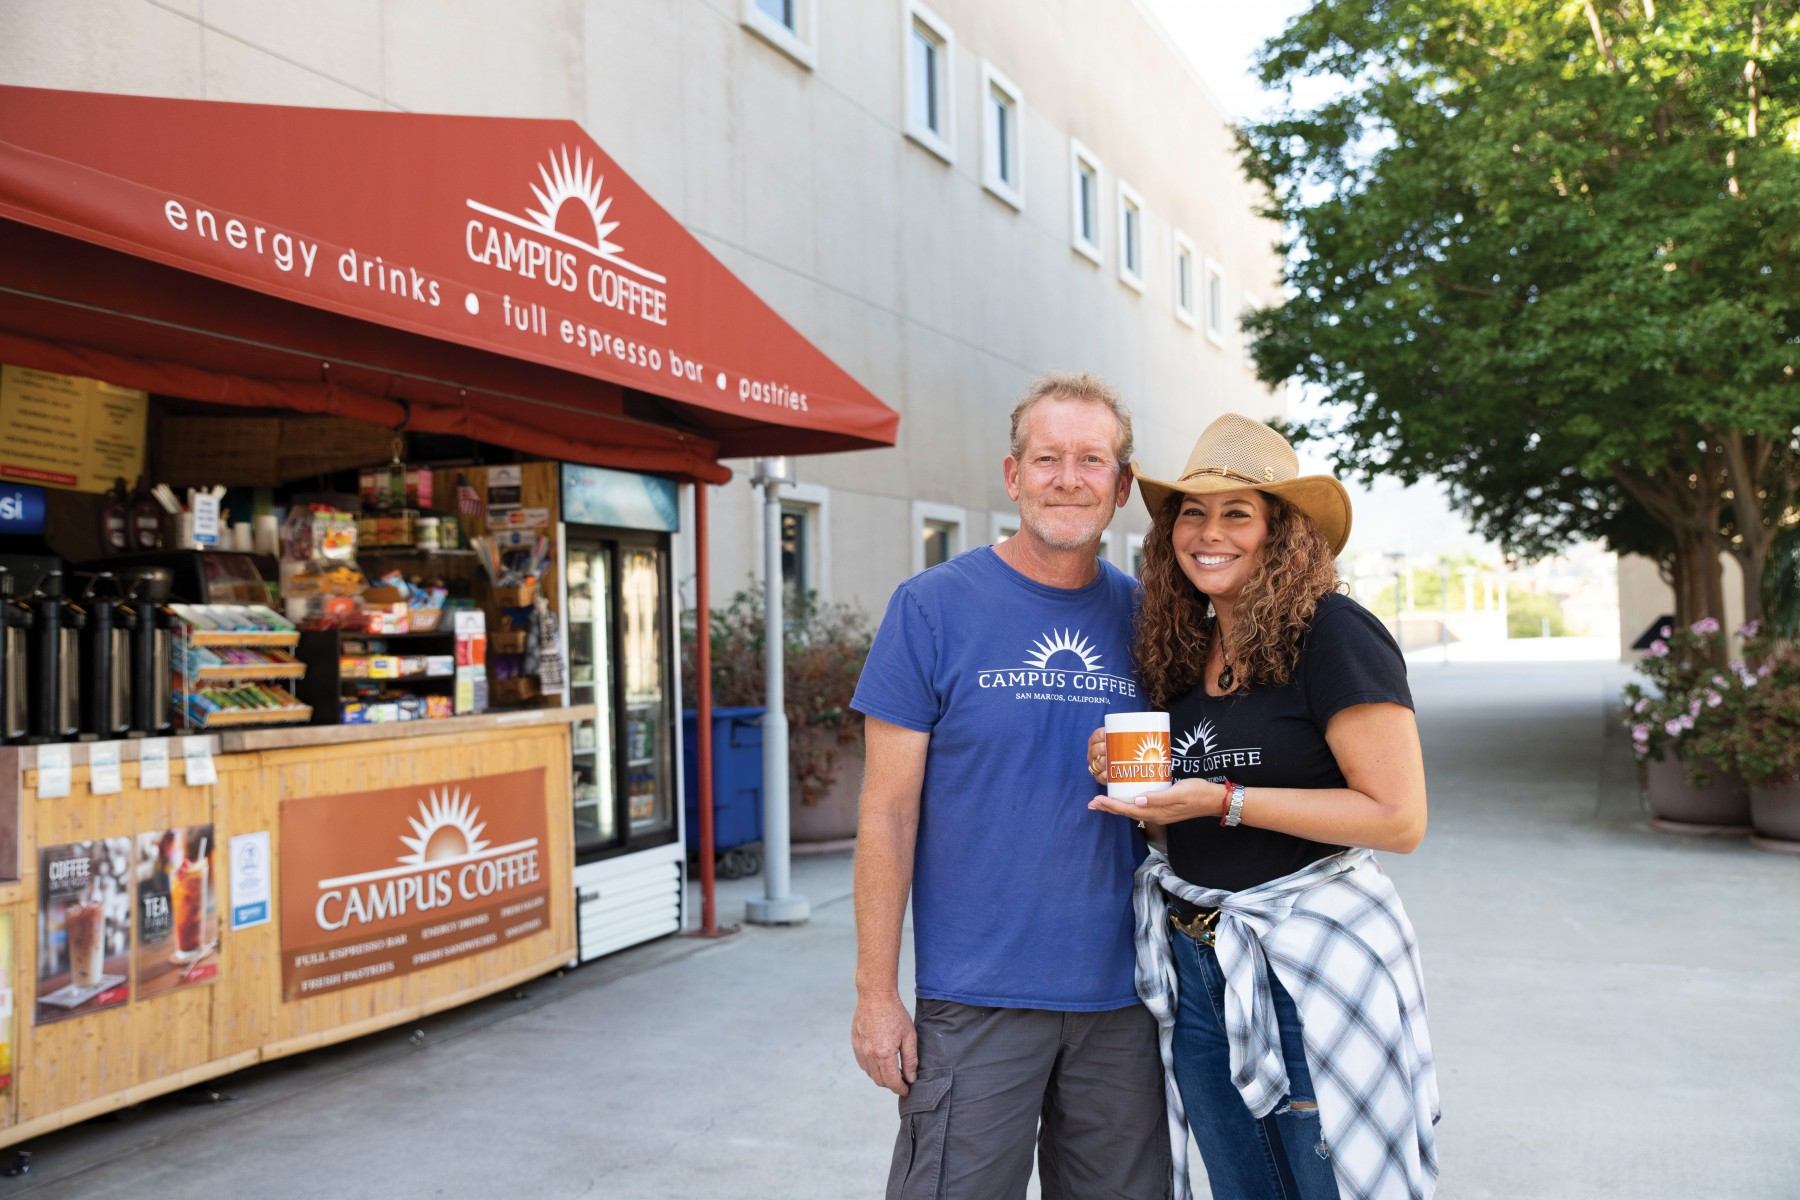 Tim and Sandra Sabbatini are celebrating their 15th anniversary as the owners of Campus Coffee at Cal State San Marcos. Photo by Andrew Reed